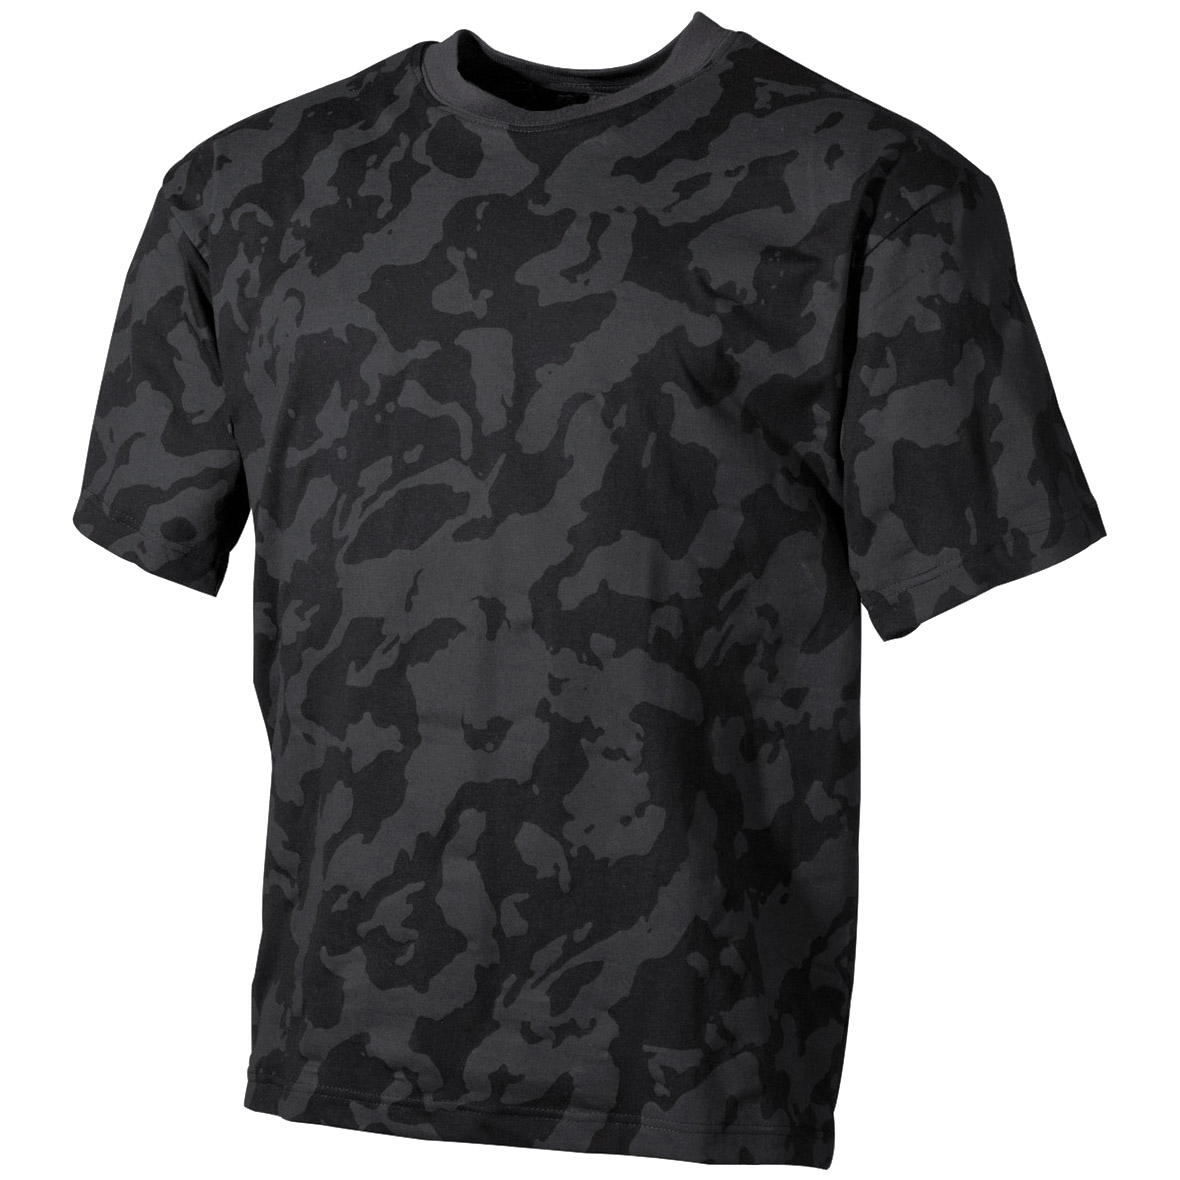 MFH T-shirt Night Camo MFH T-shirt Night Camo